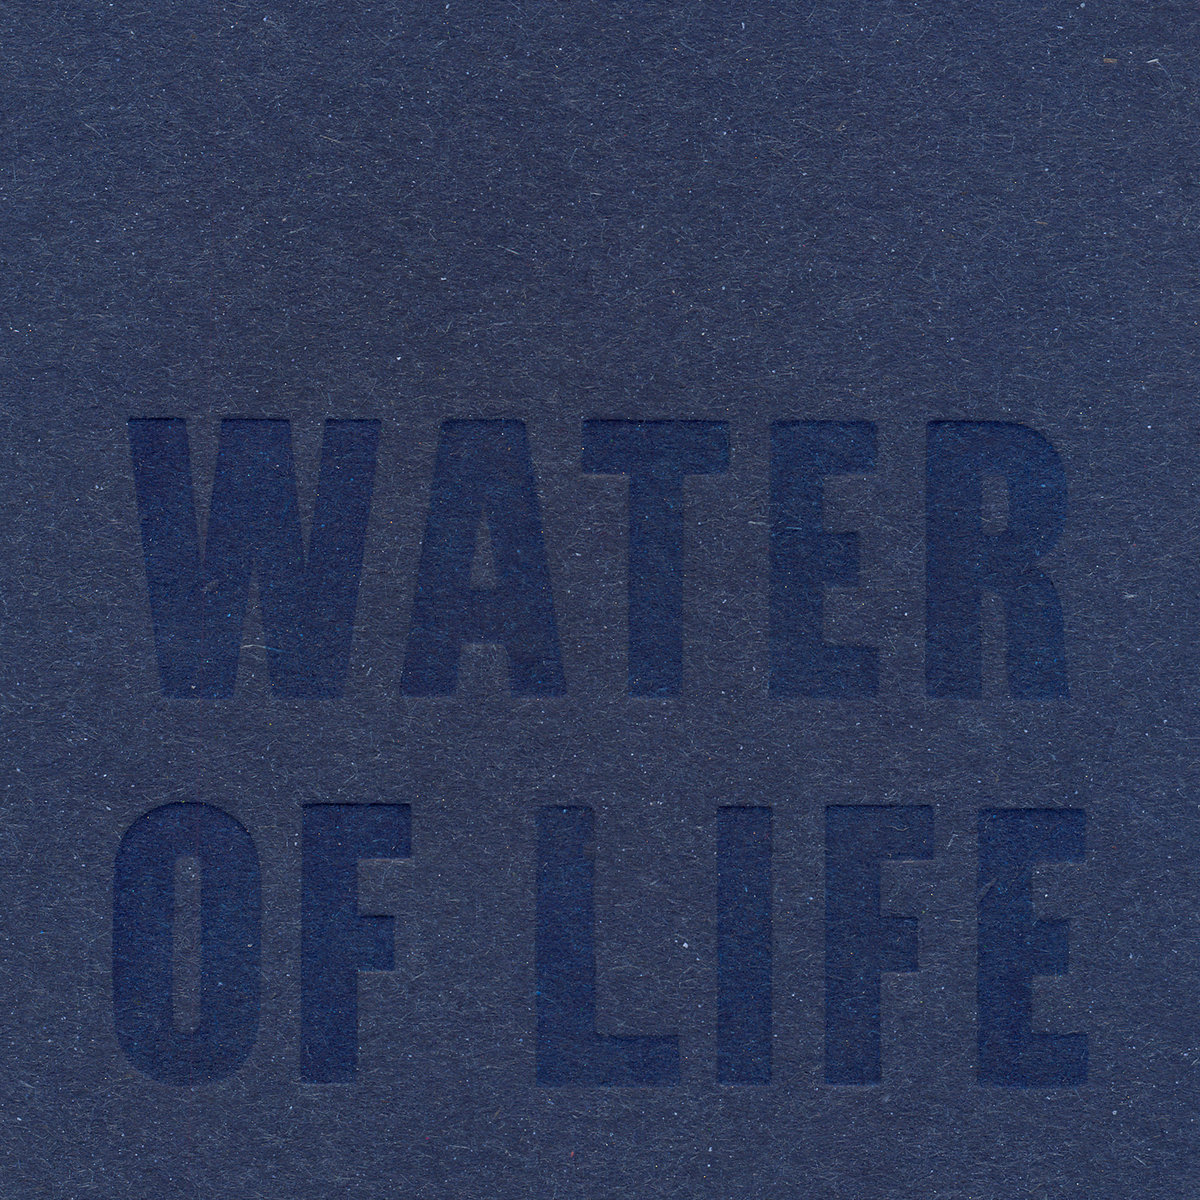 water of life prints and essays water of life by water of life